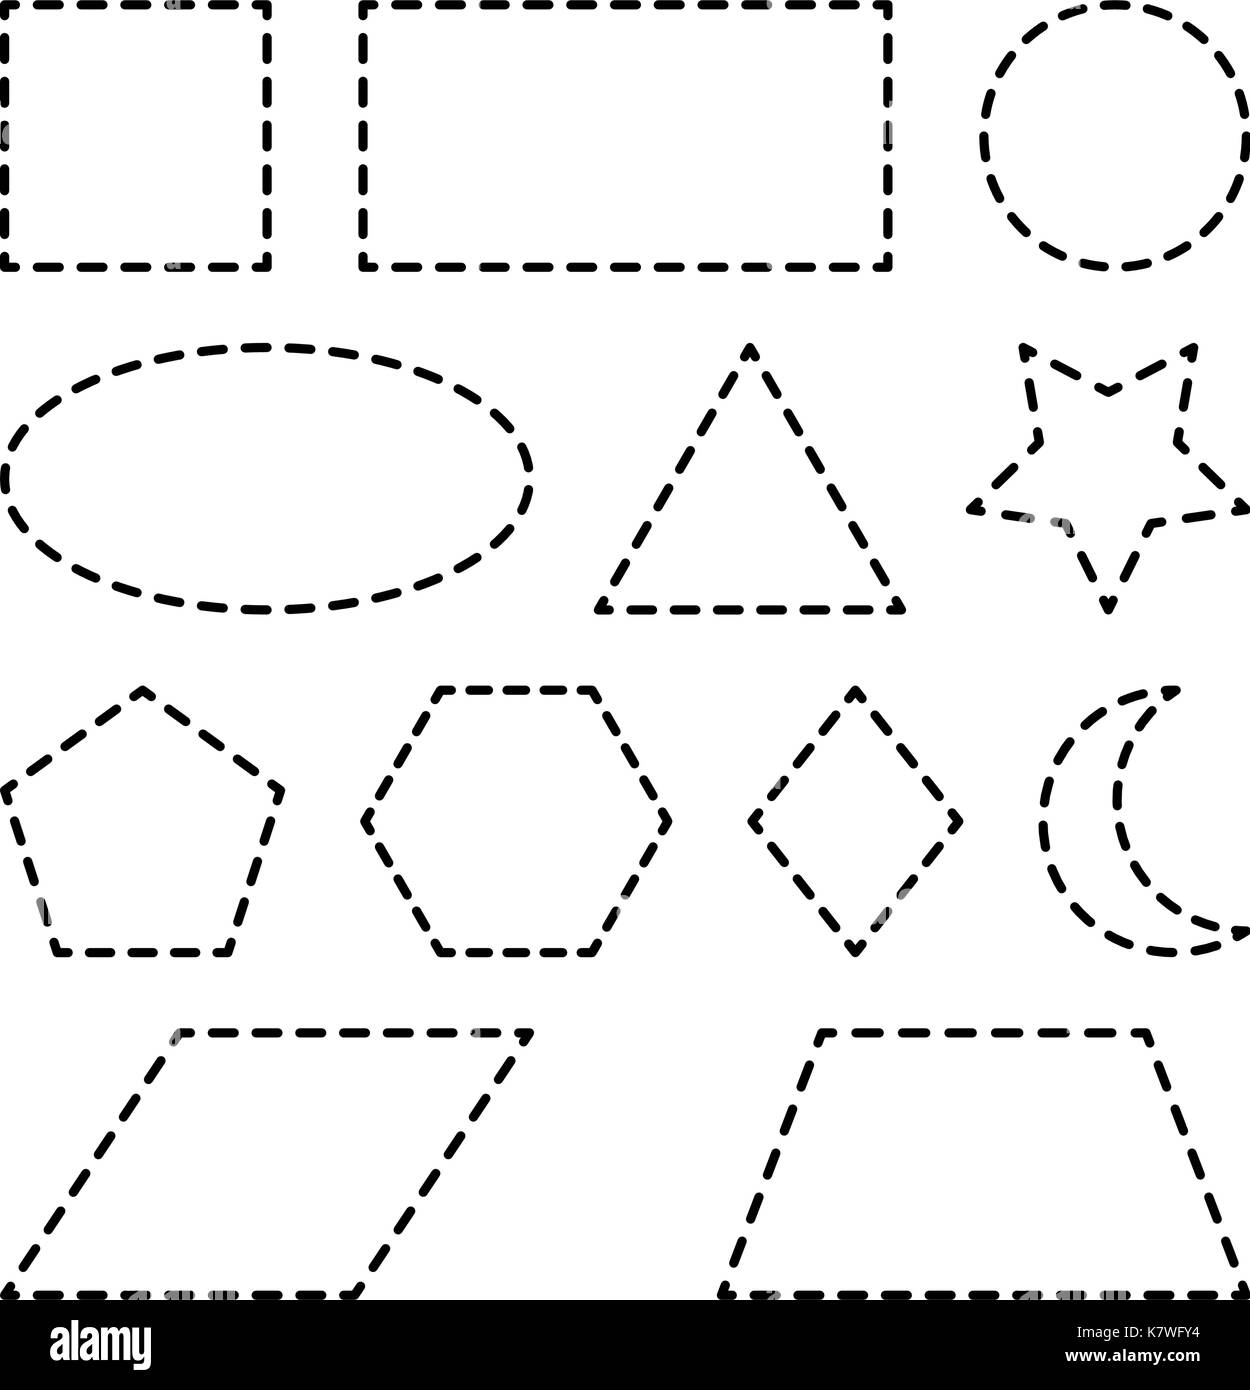 Geometric Shapes Square Circle Oval Triangle Hexagon